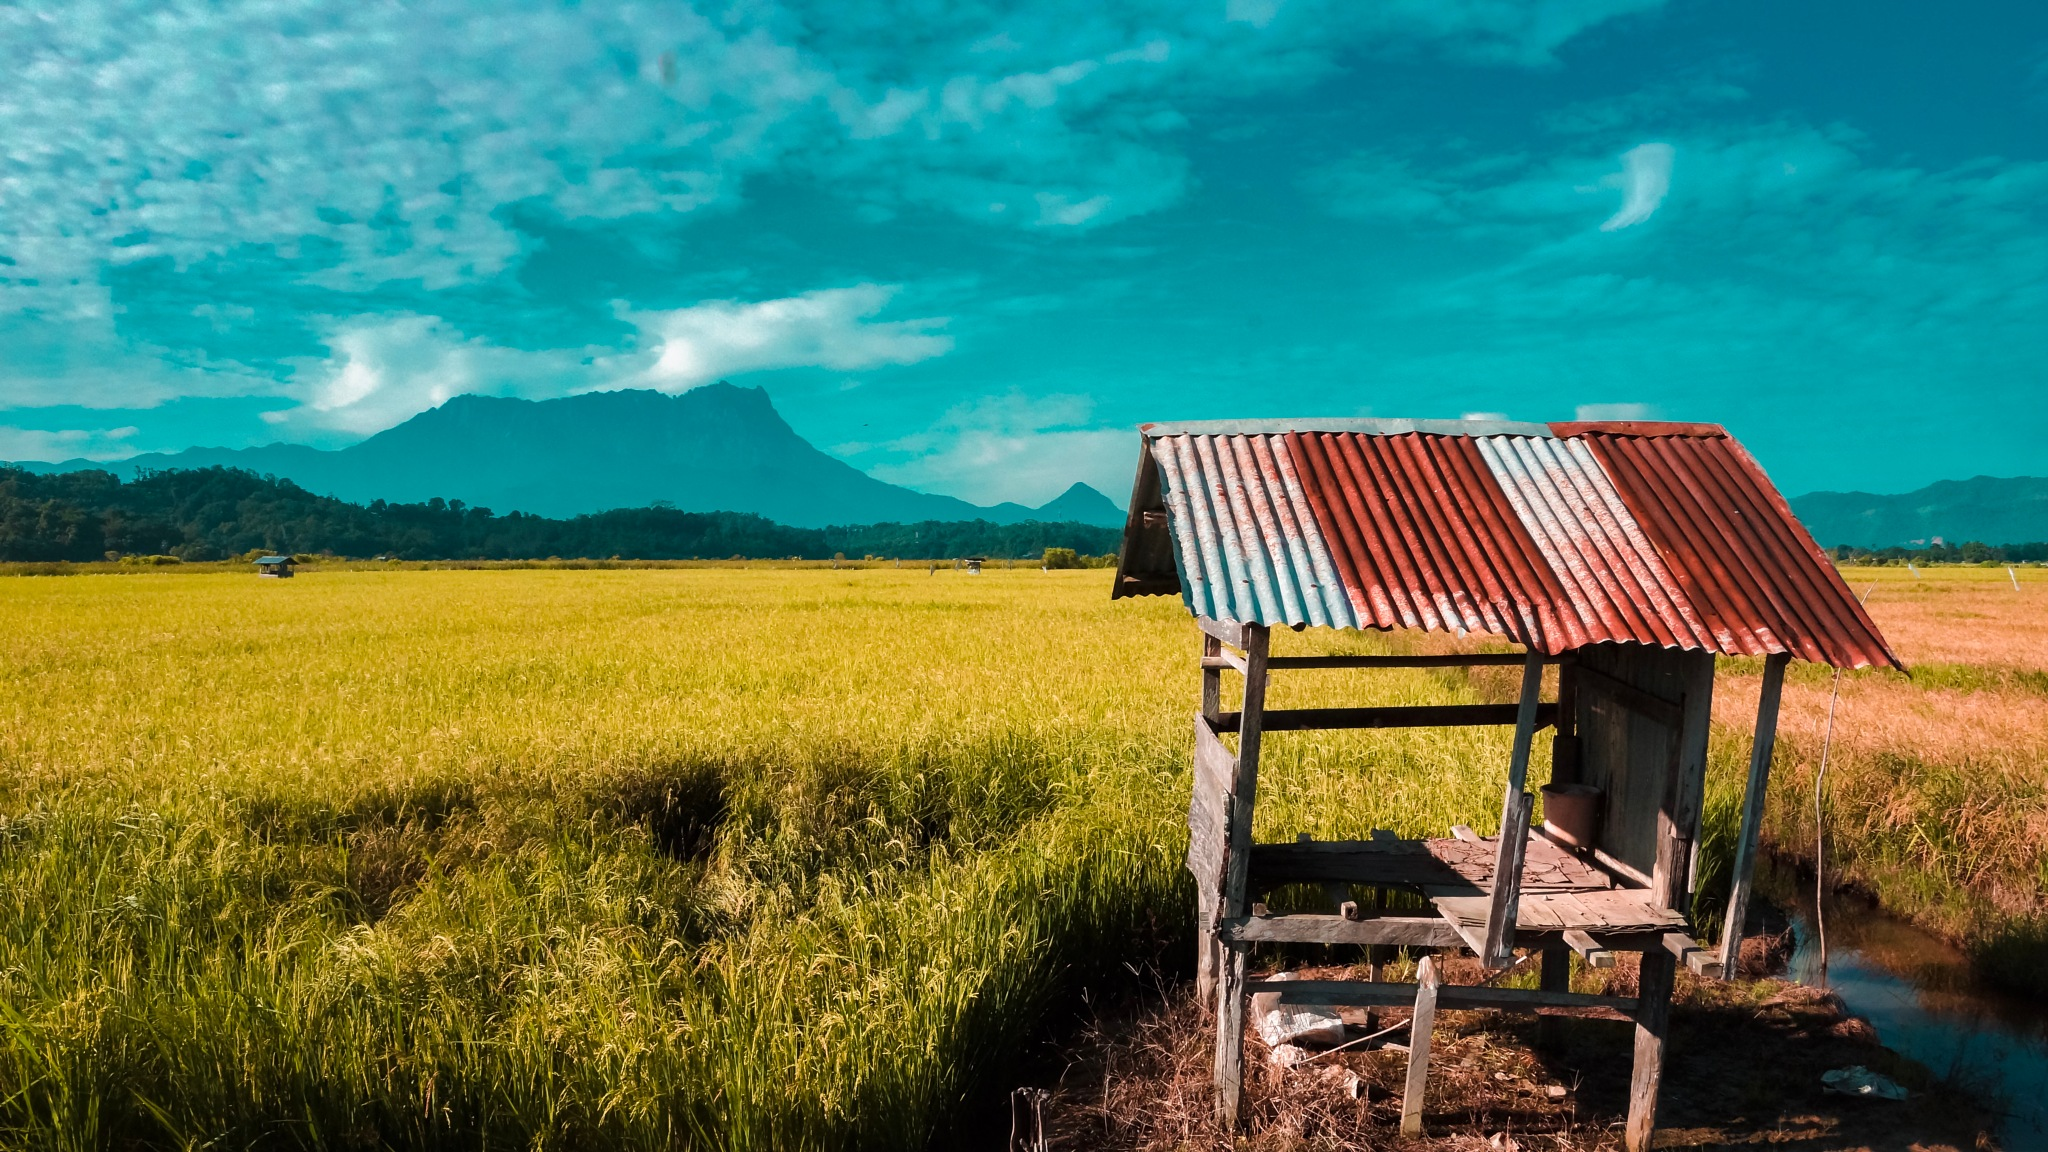 Small hut for the farmers to rest in by Craig Ansibin